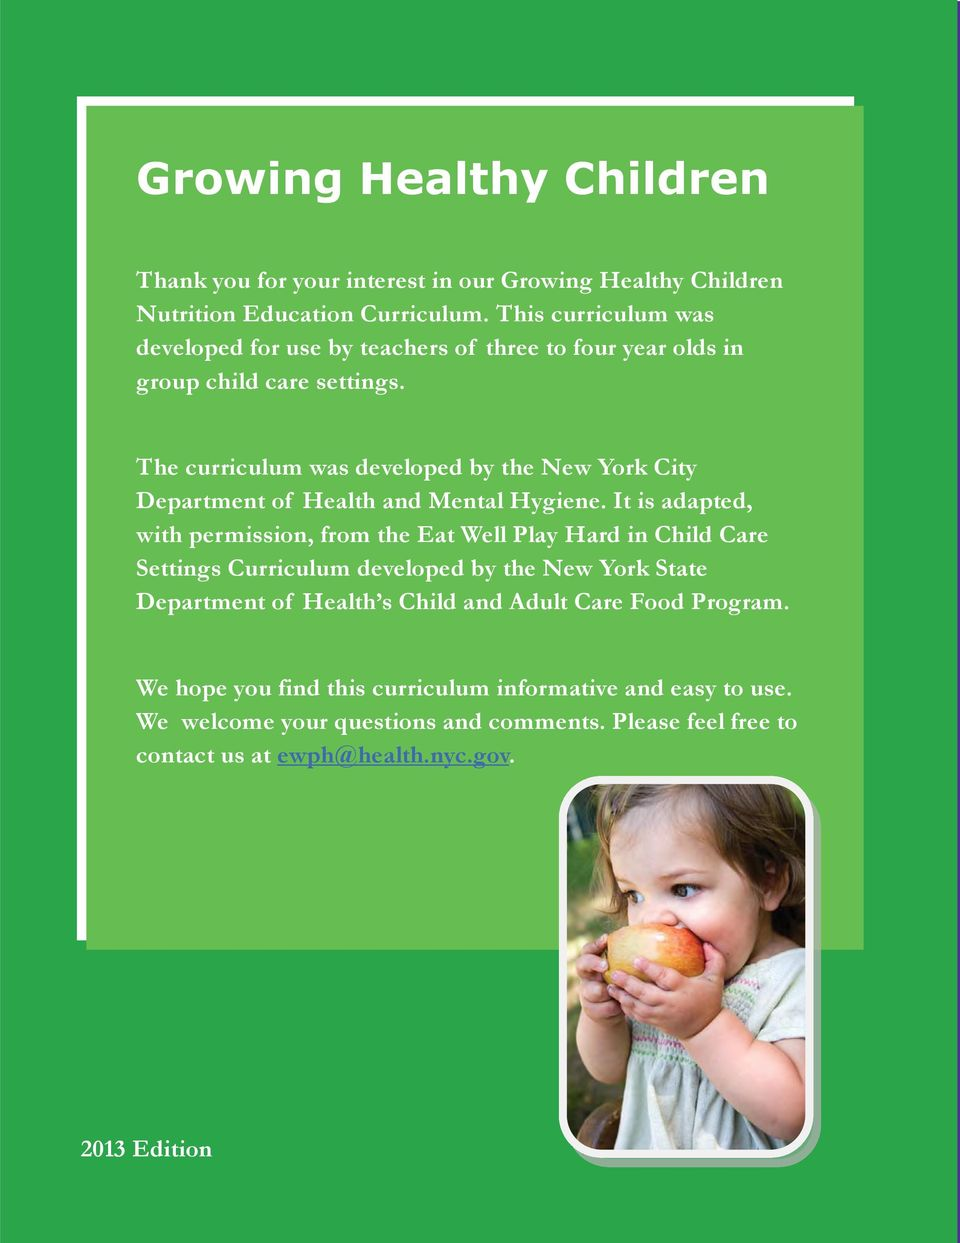 The curriculum was developed by the New York City Department of Health and Mental Hygiene.